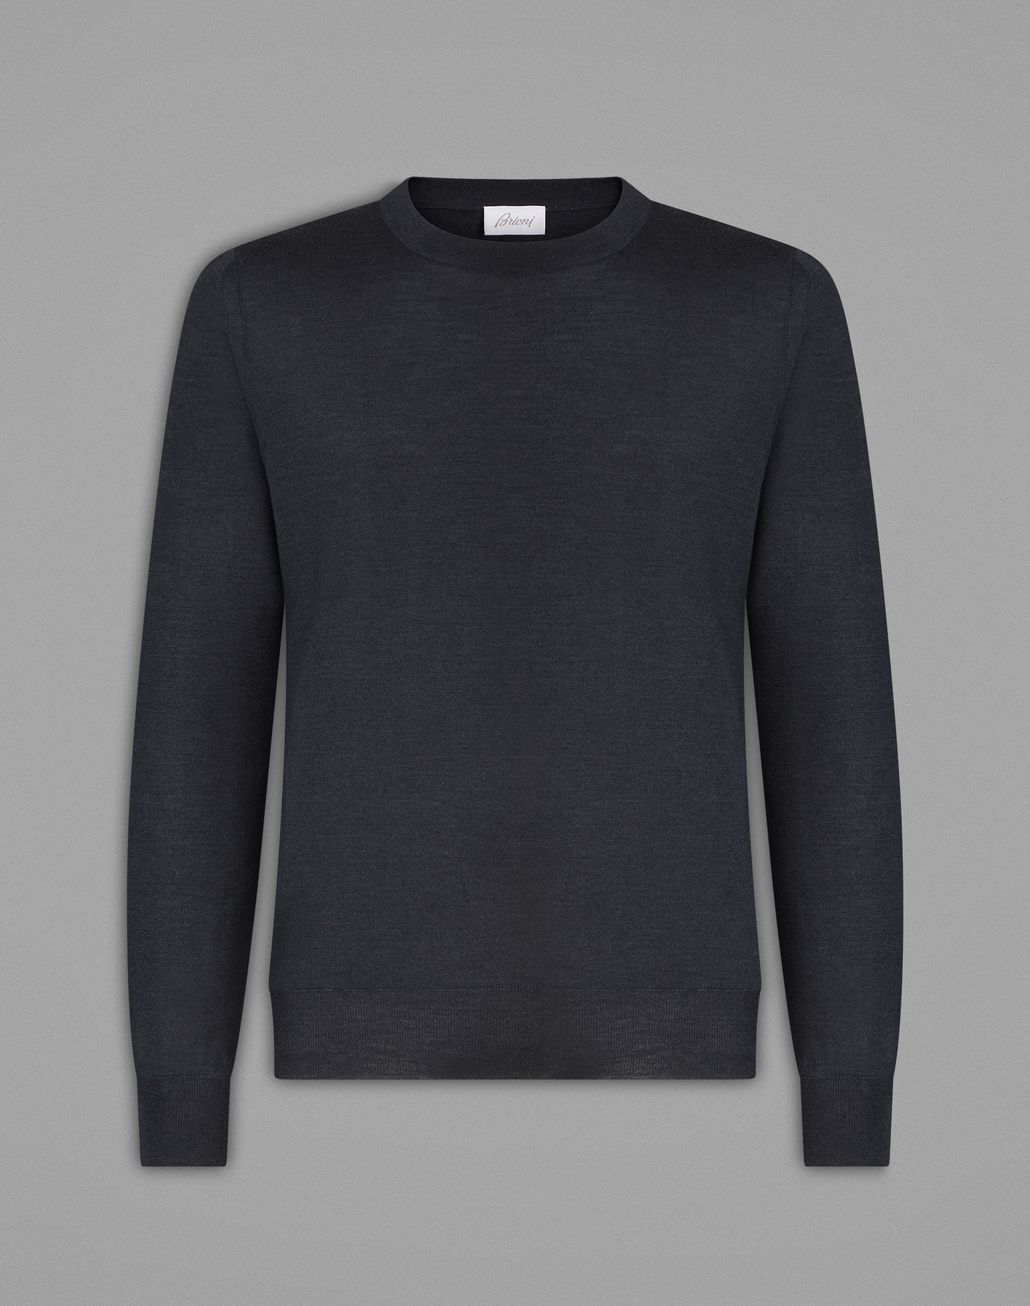 BRIONI 'Essential' Gray Crew-Neck Sweater Knitwear Man f